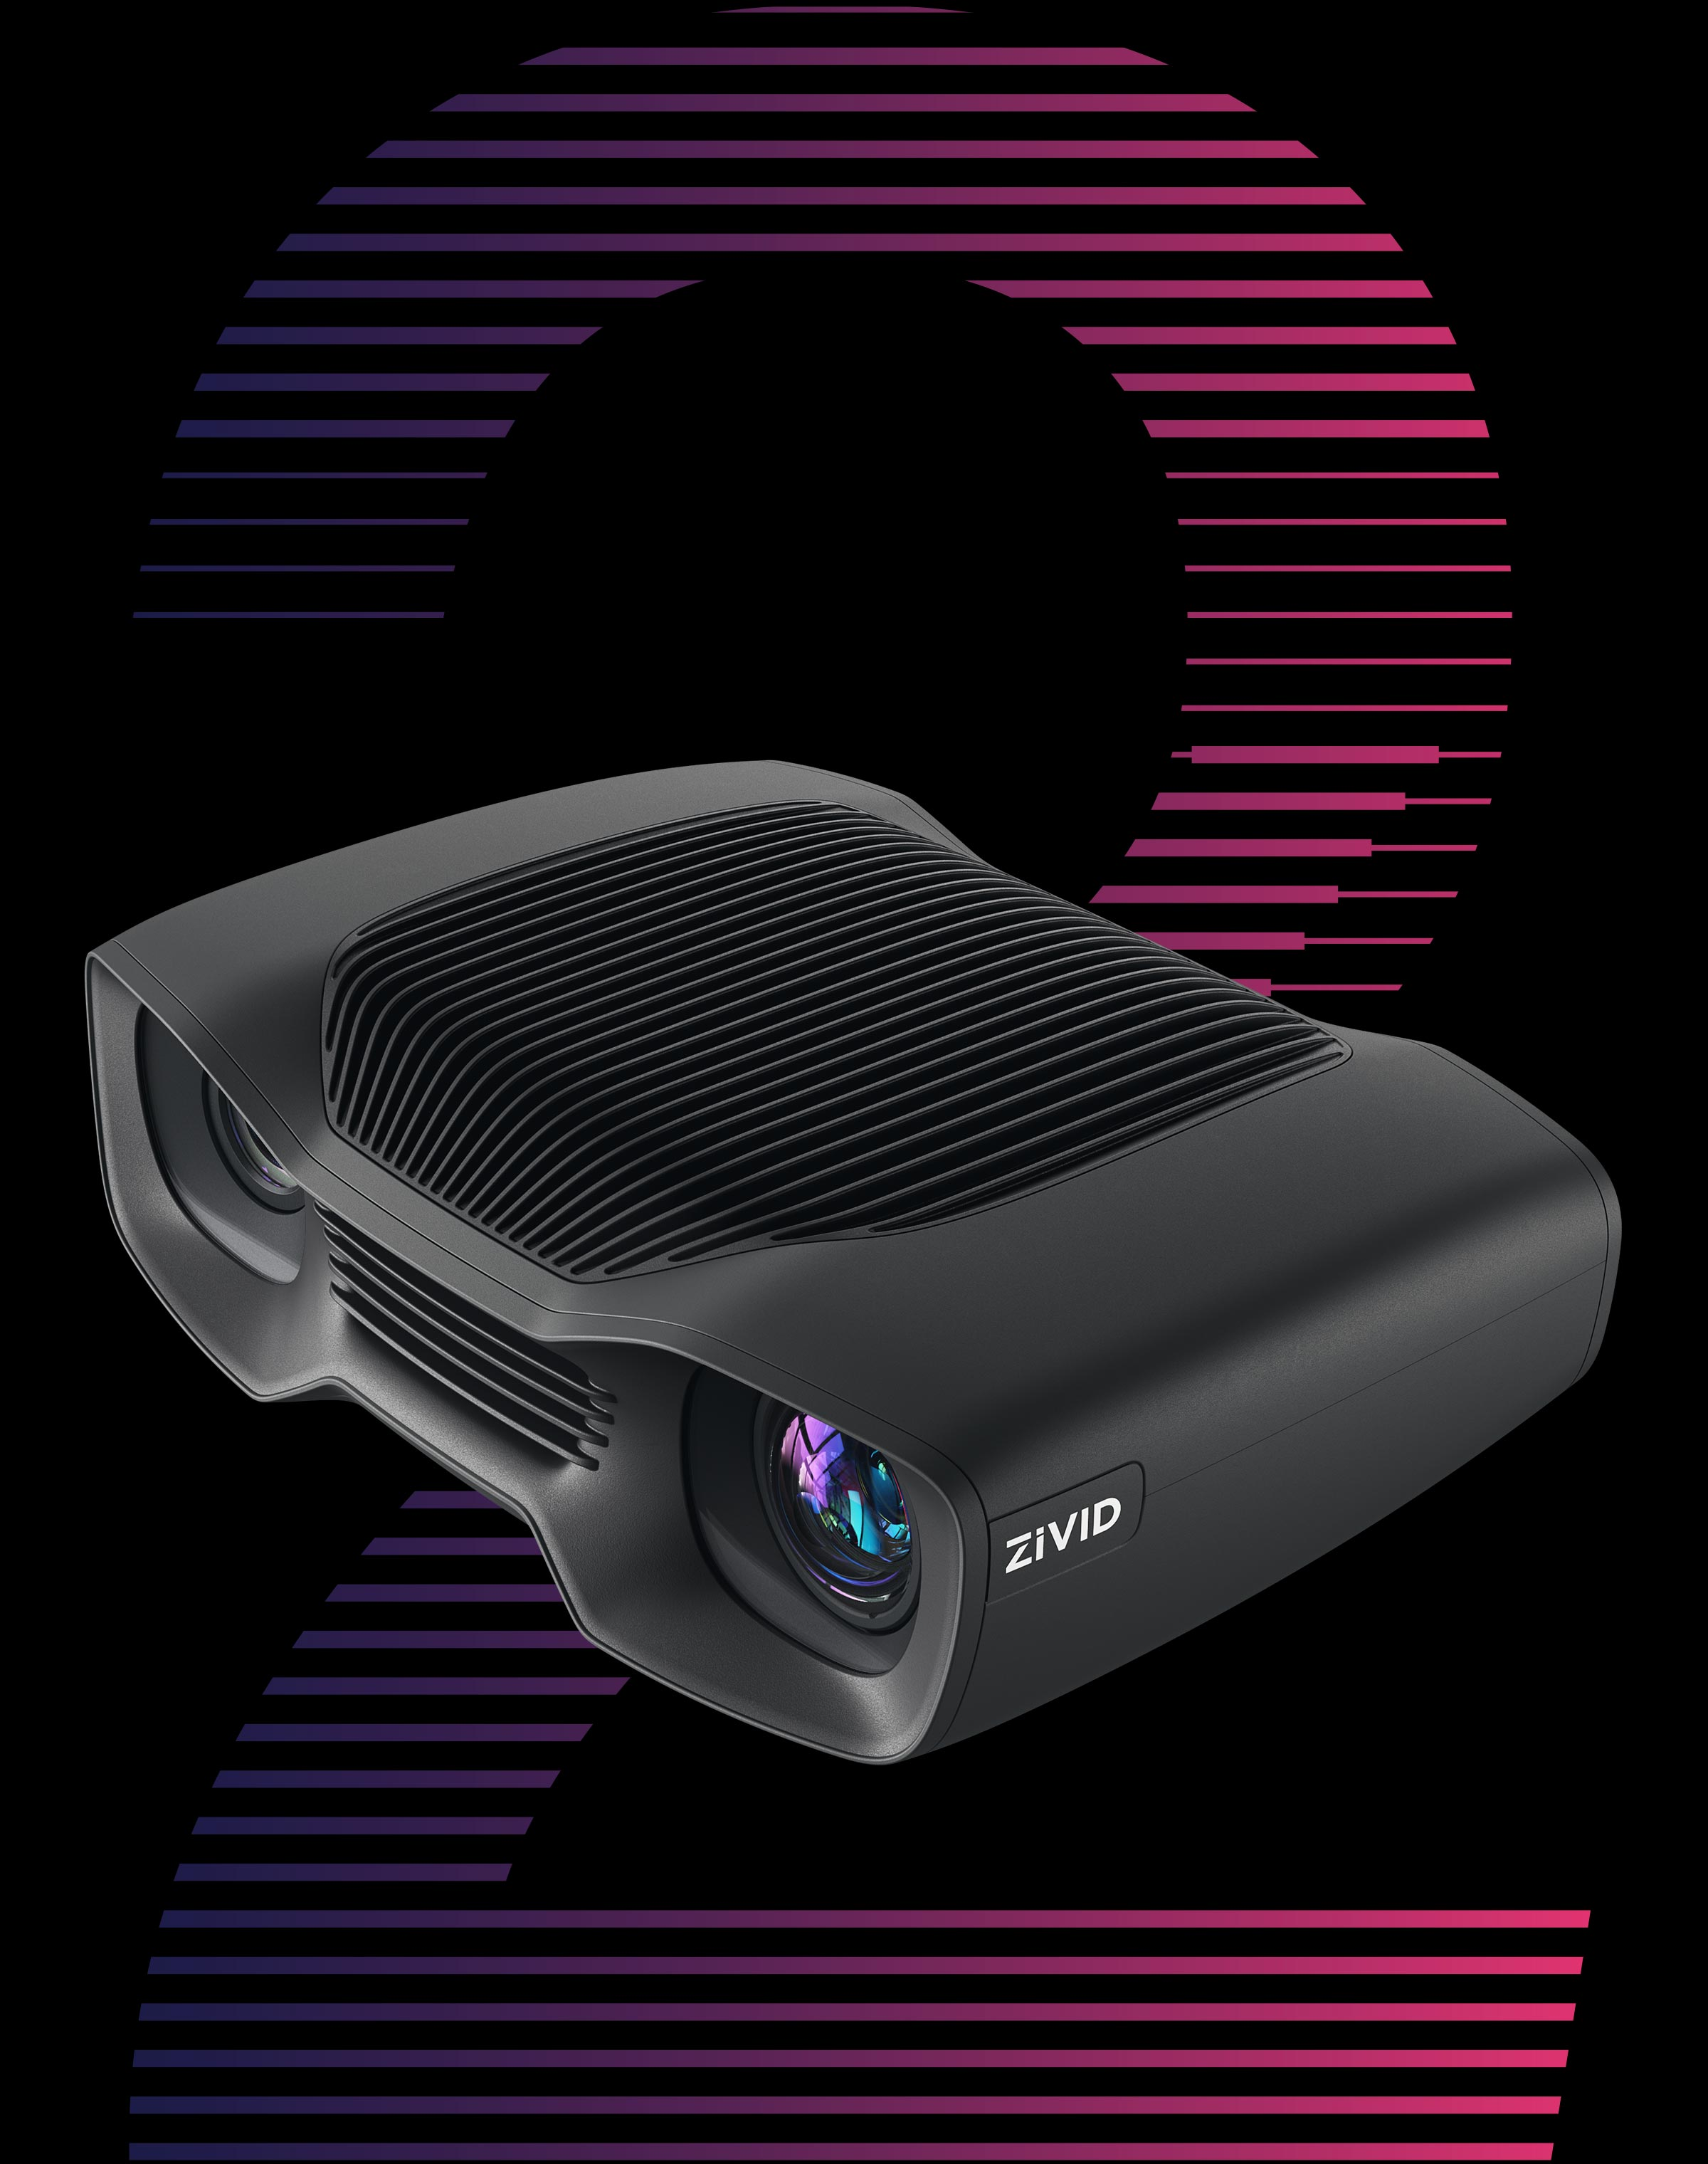 Zivid-Two-Industrial-3D-color-camera-bg